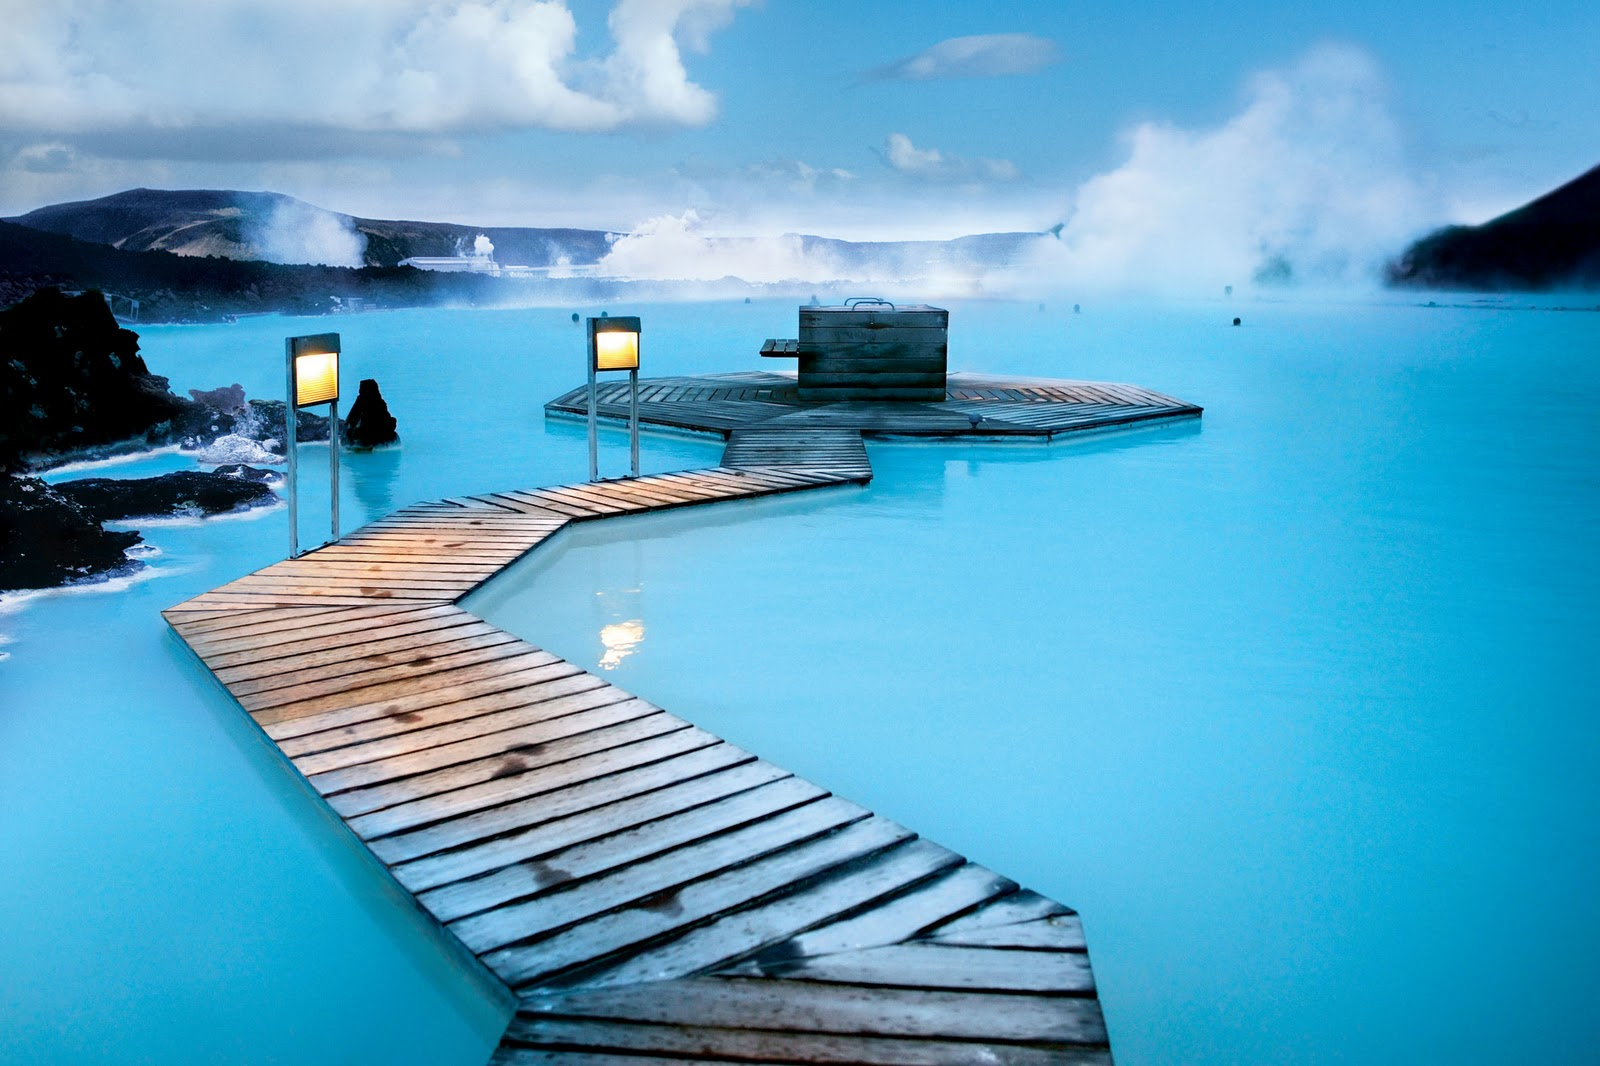 iceland winter tour 4 day holiday 0